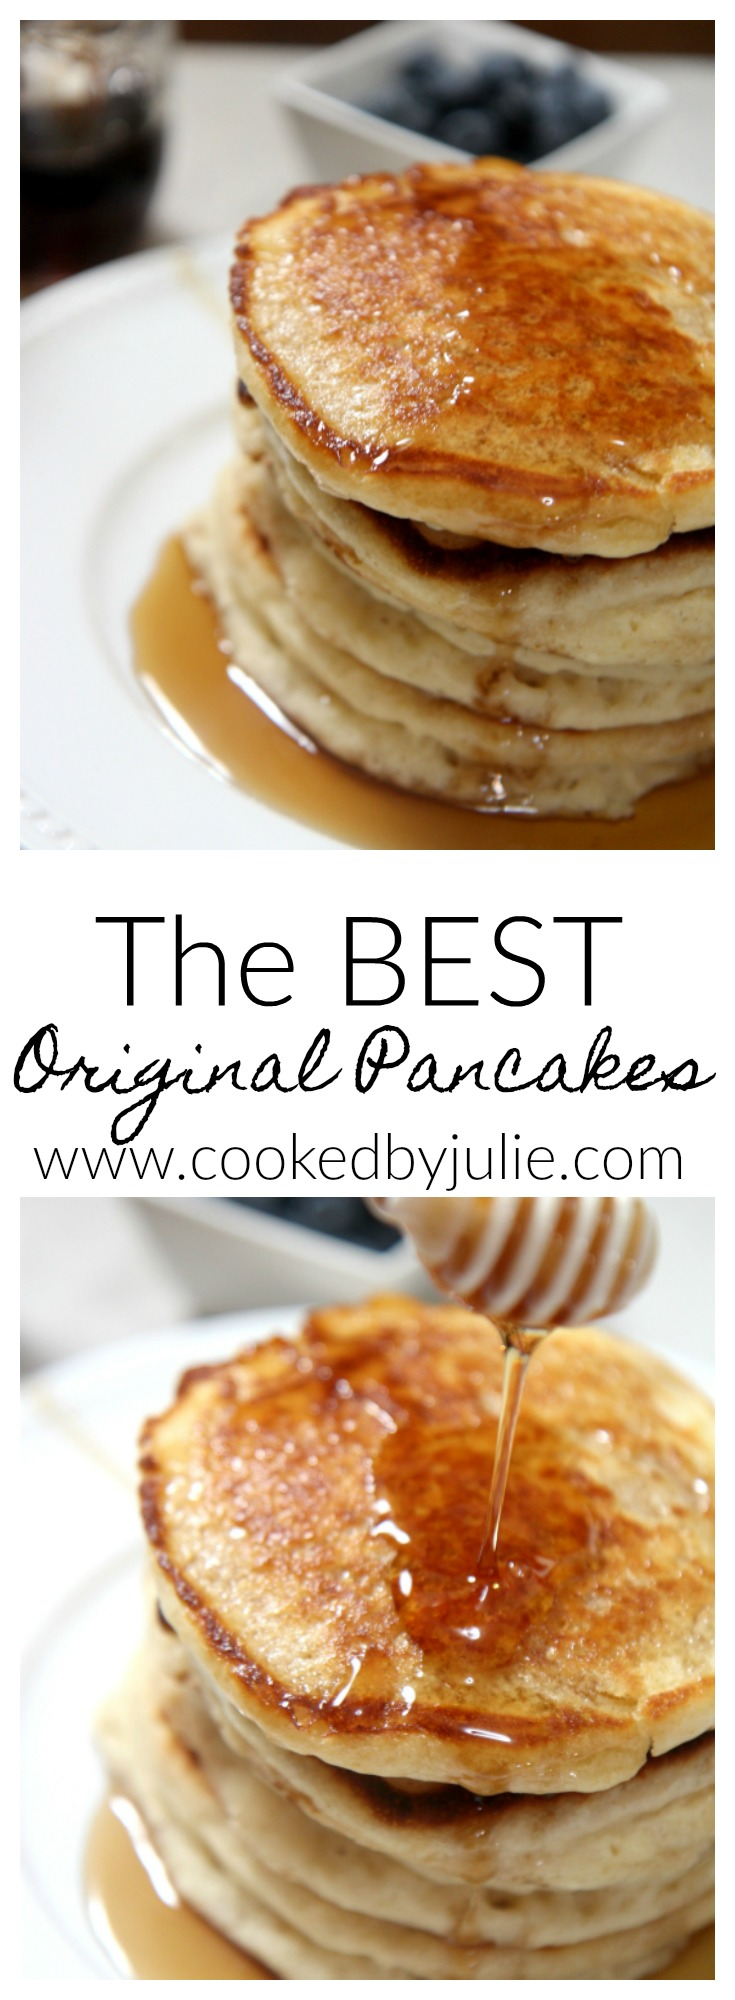 Best Original Pancaked by Cooked by Julie